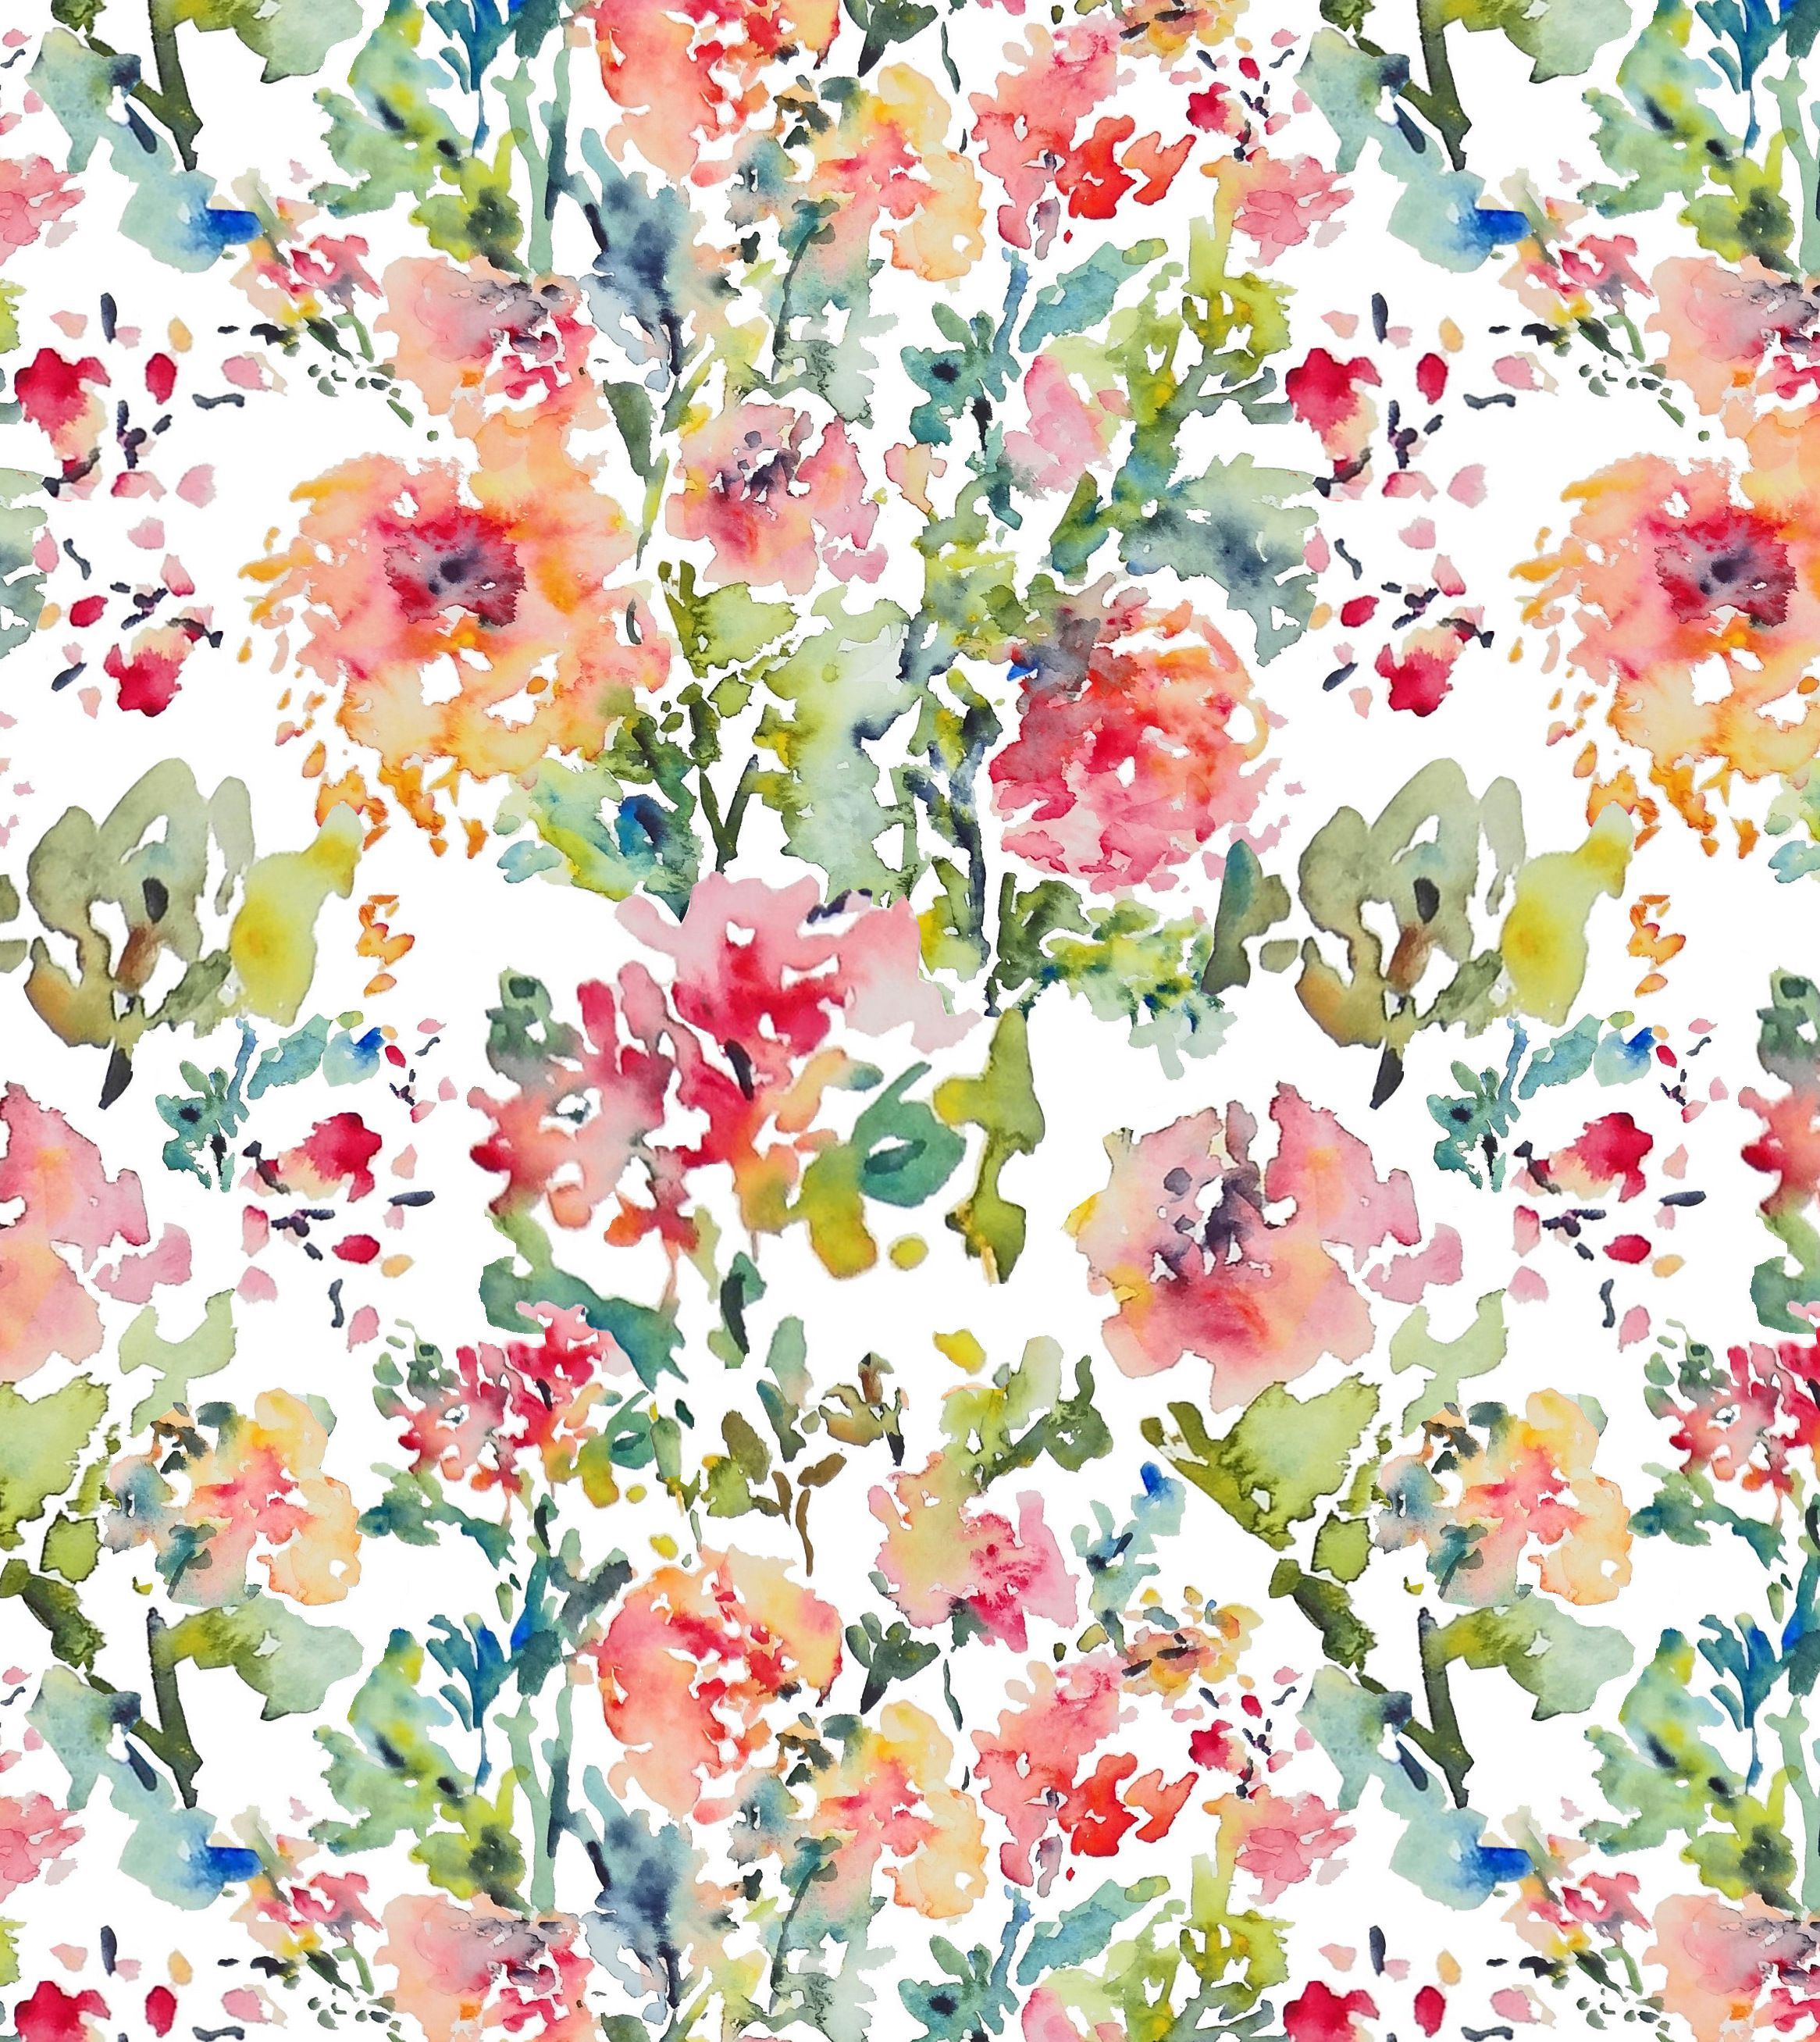 Fabric Pattern New Design Ideas